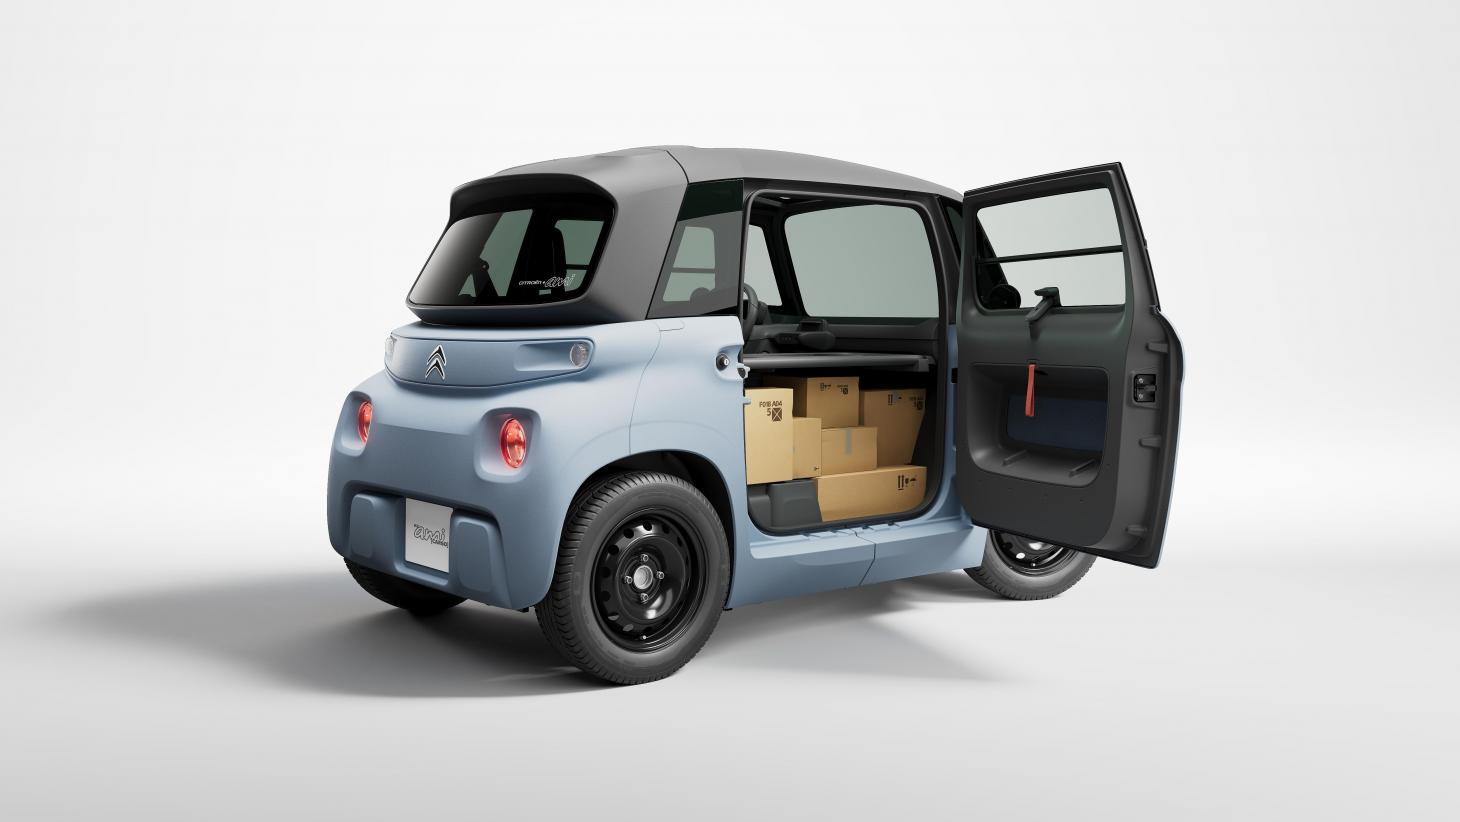 The new Citroën My Ami Cargo, an ultra-compact electric delivery van